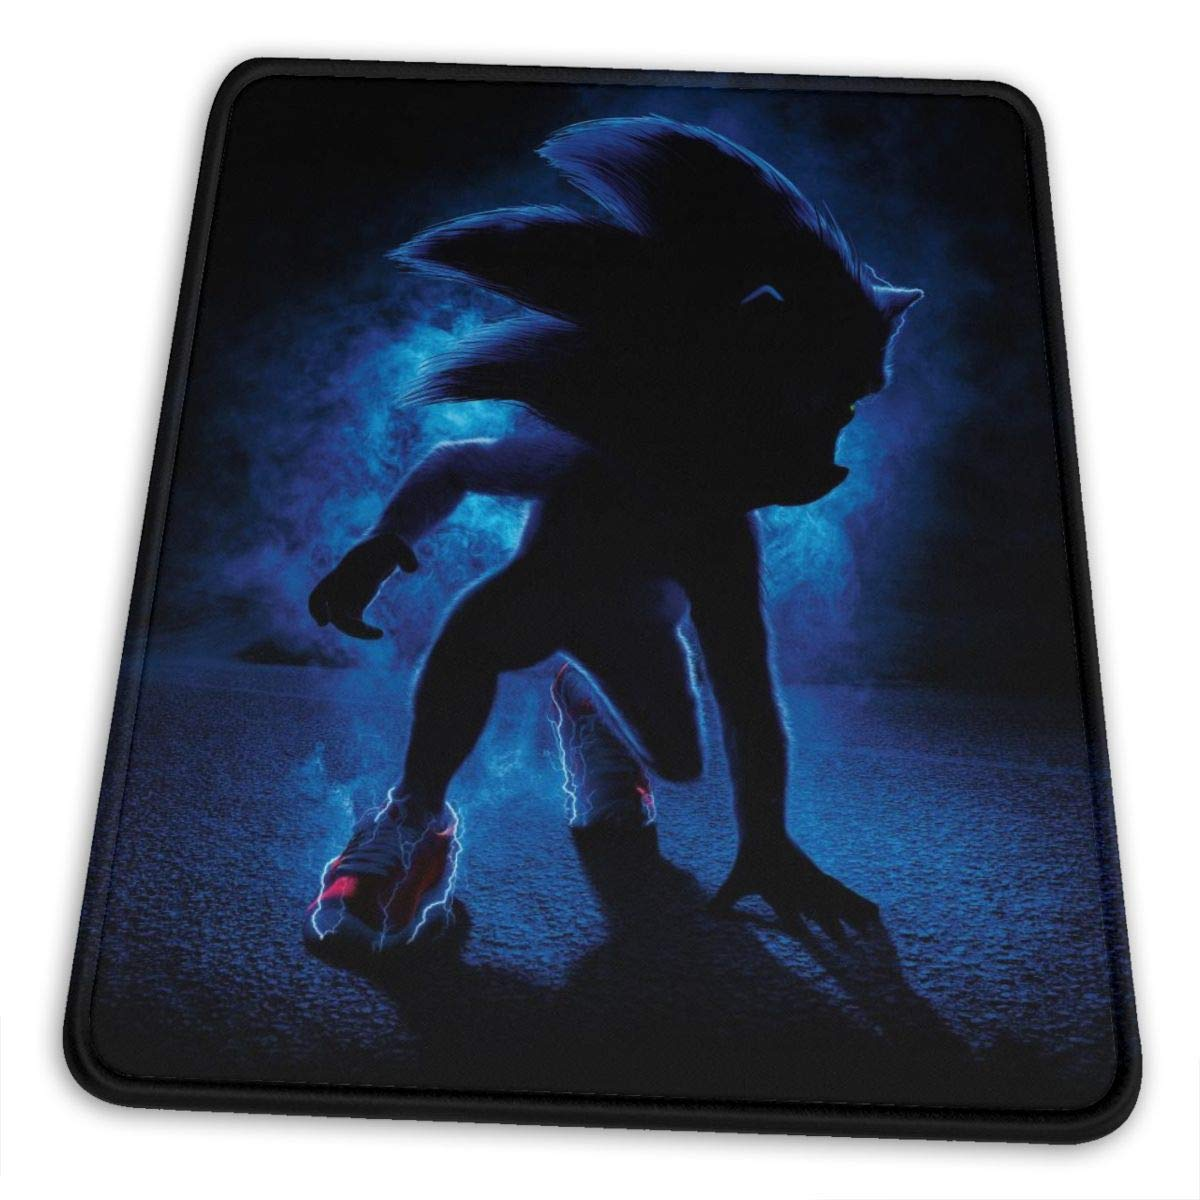 Anime Dragon Ball Son Gaming Mouse Mat Pad Unique Custom Mousepad Large Mouse Pats Office Ideal for Desk Cover Laptop and PC 10 X 12 Inch Stitched Edges Computer Keyboard